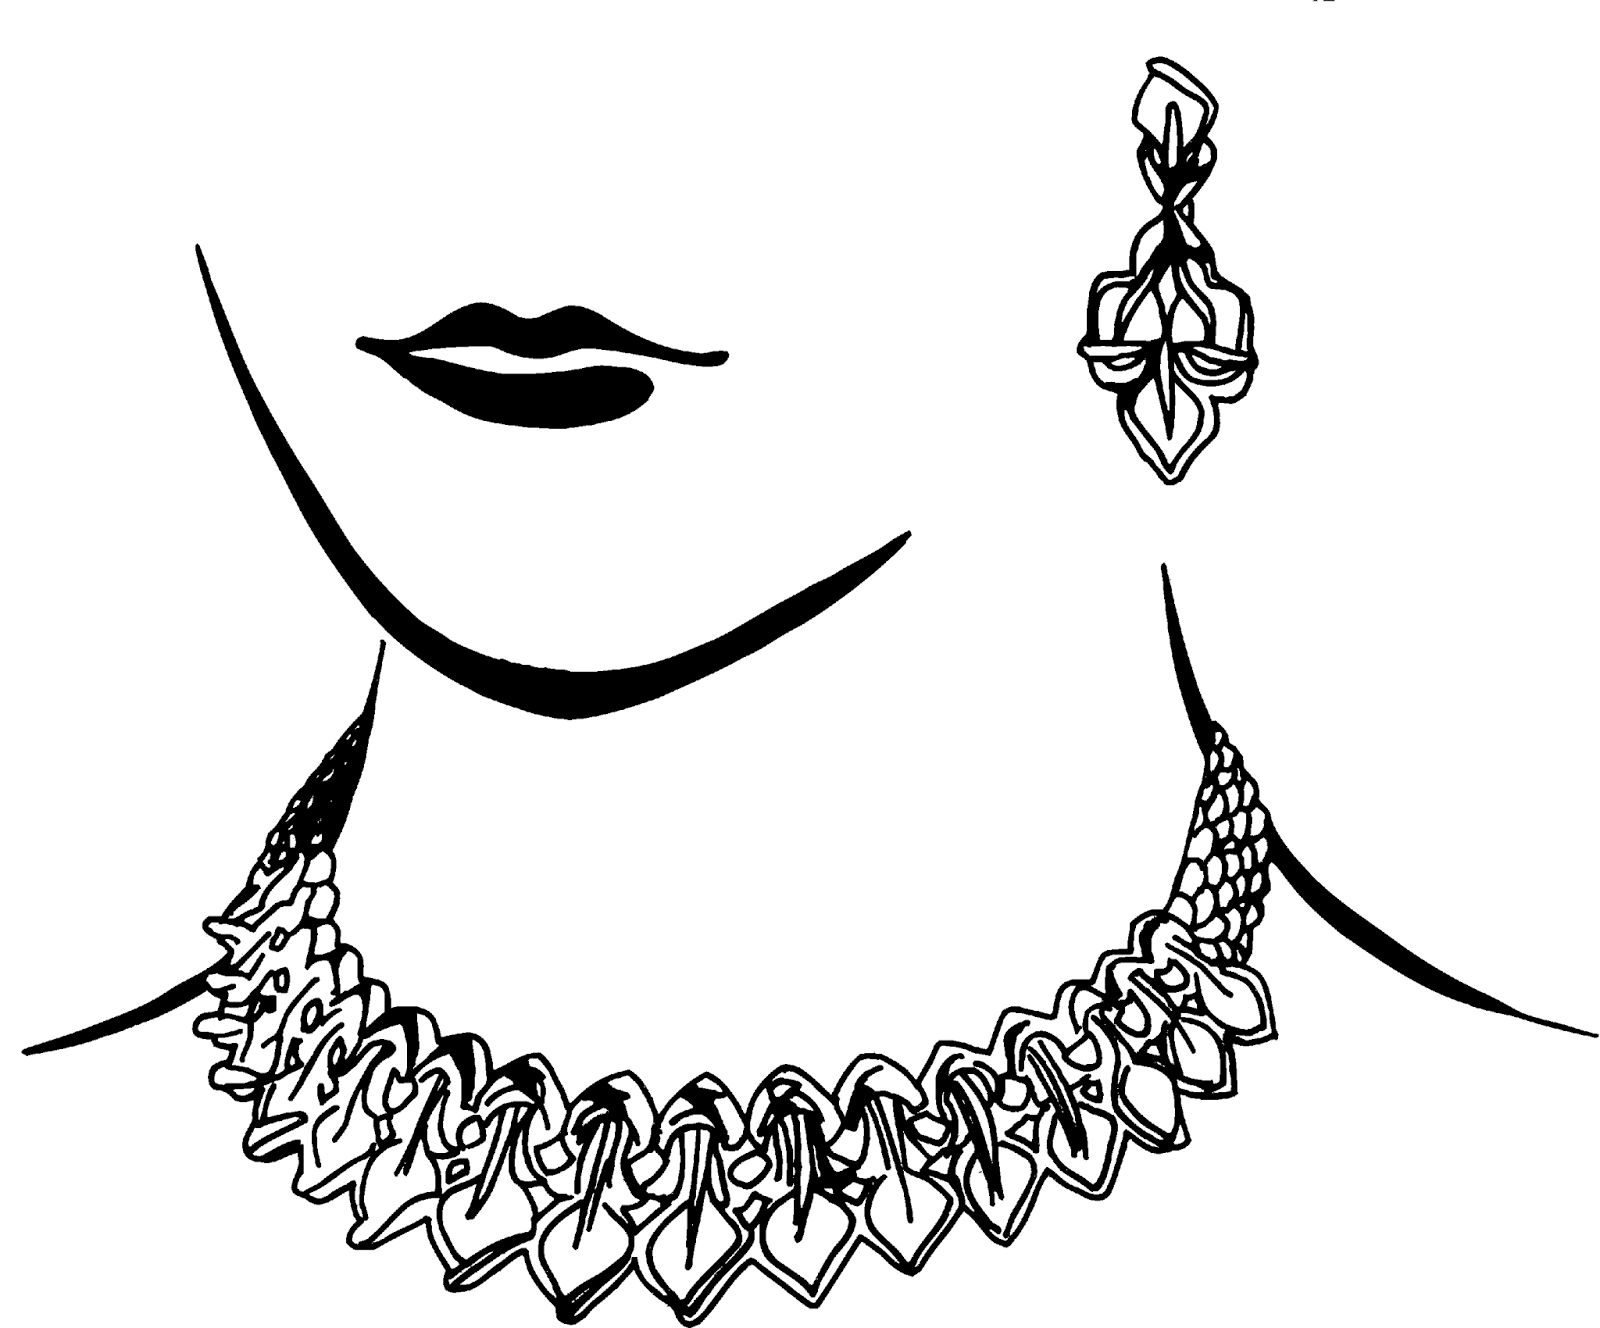 Siwlry clipart clipart black and white download Jewellery Clipart Group with 69+ items clipart black and white download